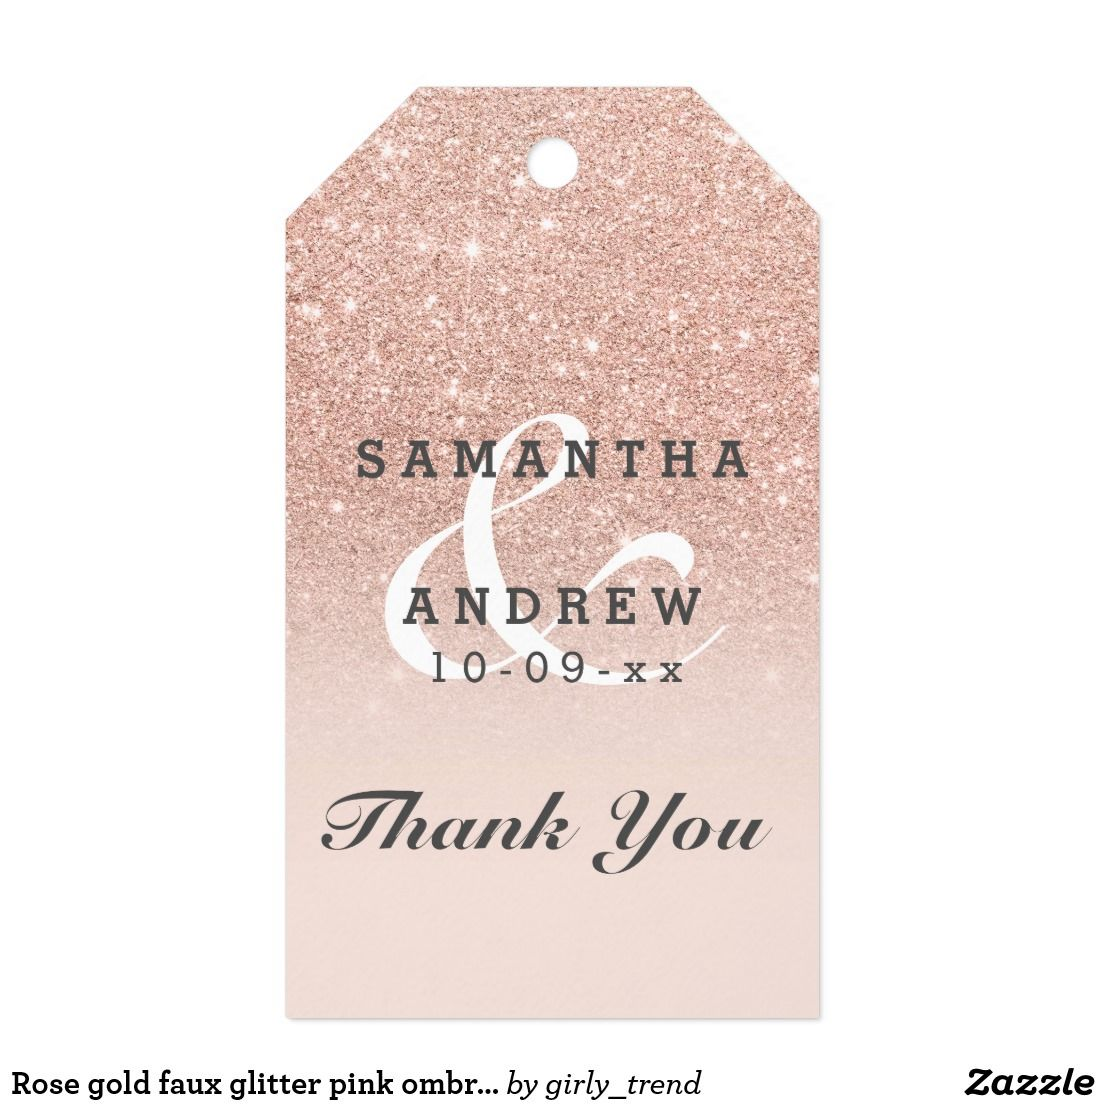 Rose gold faux glitter pink ombre wedding favor gift tags | Wedding ...